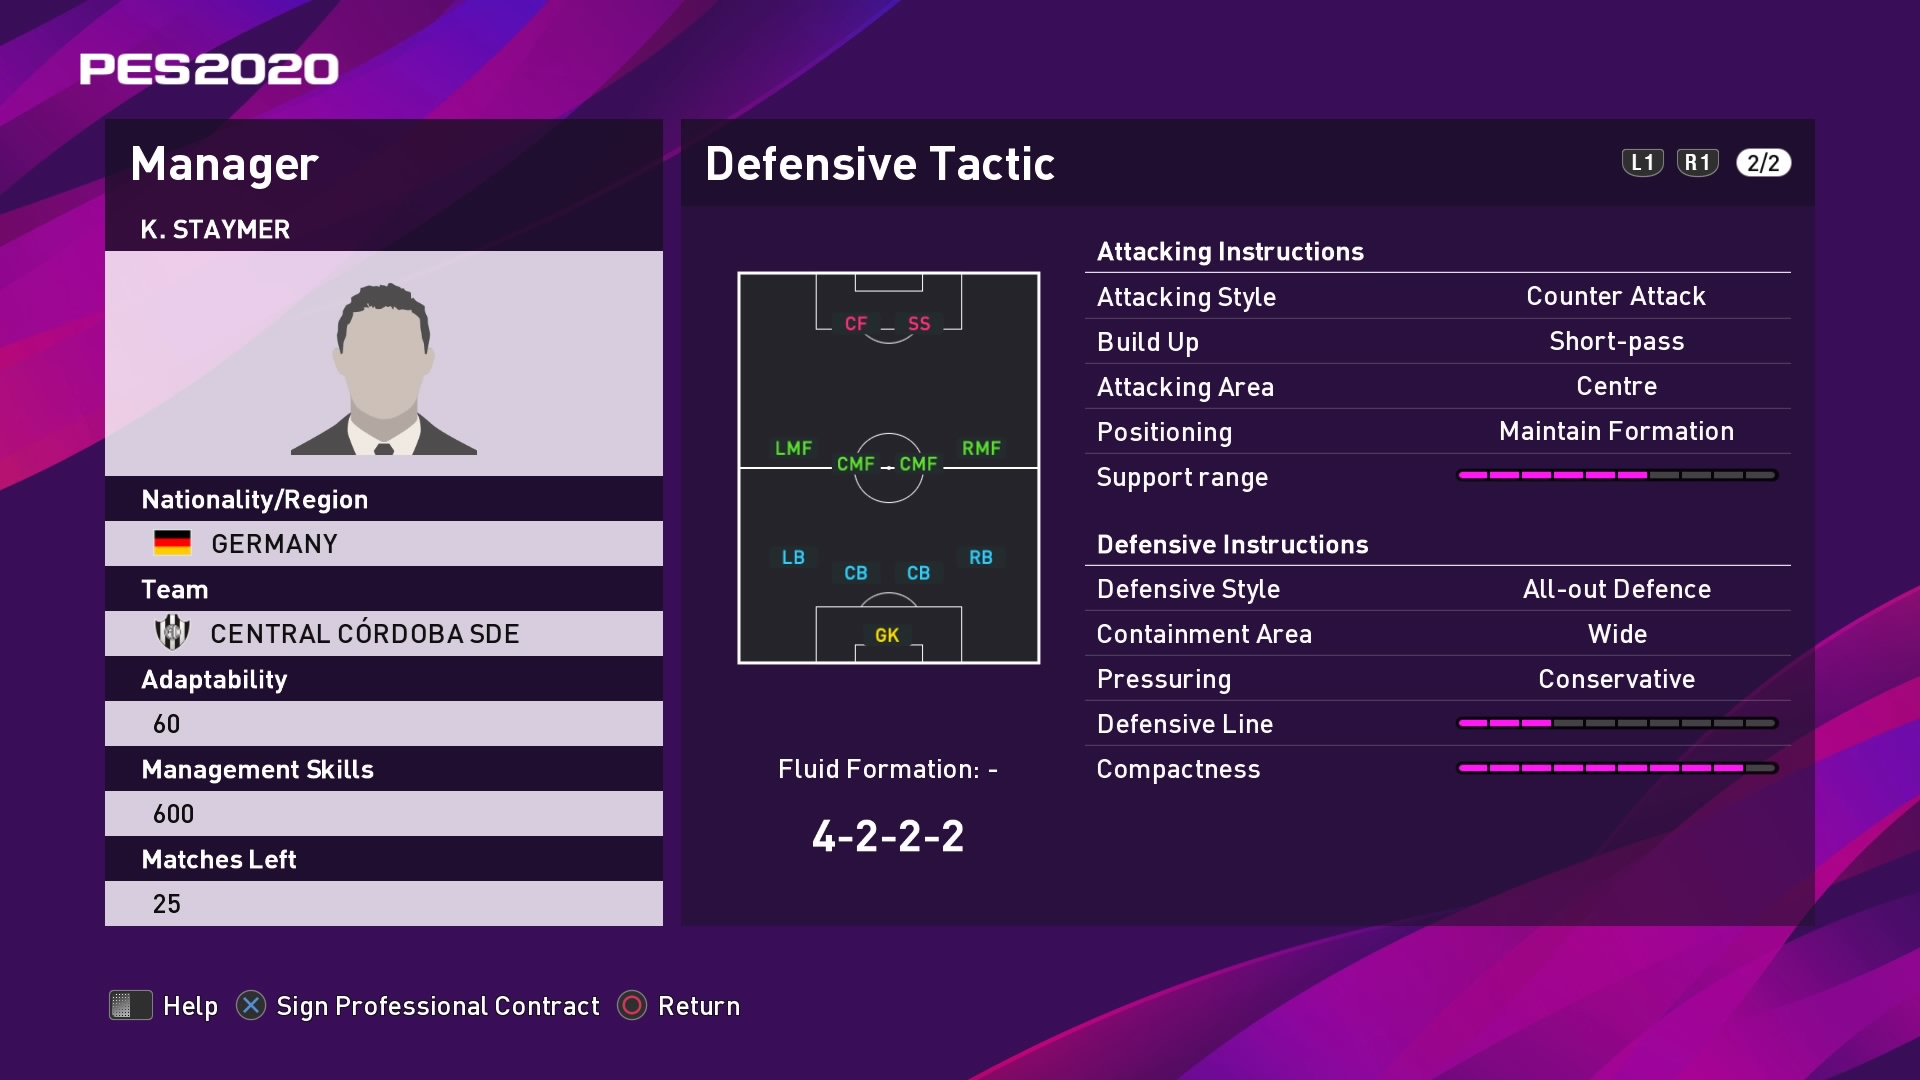 K. Staymer Defensive Tactic in PES 2020 myClub